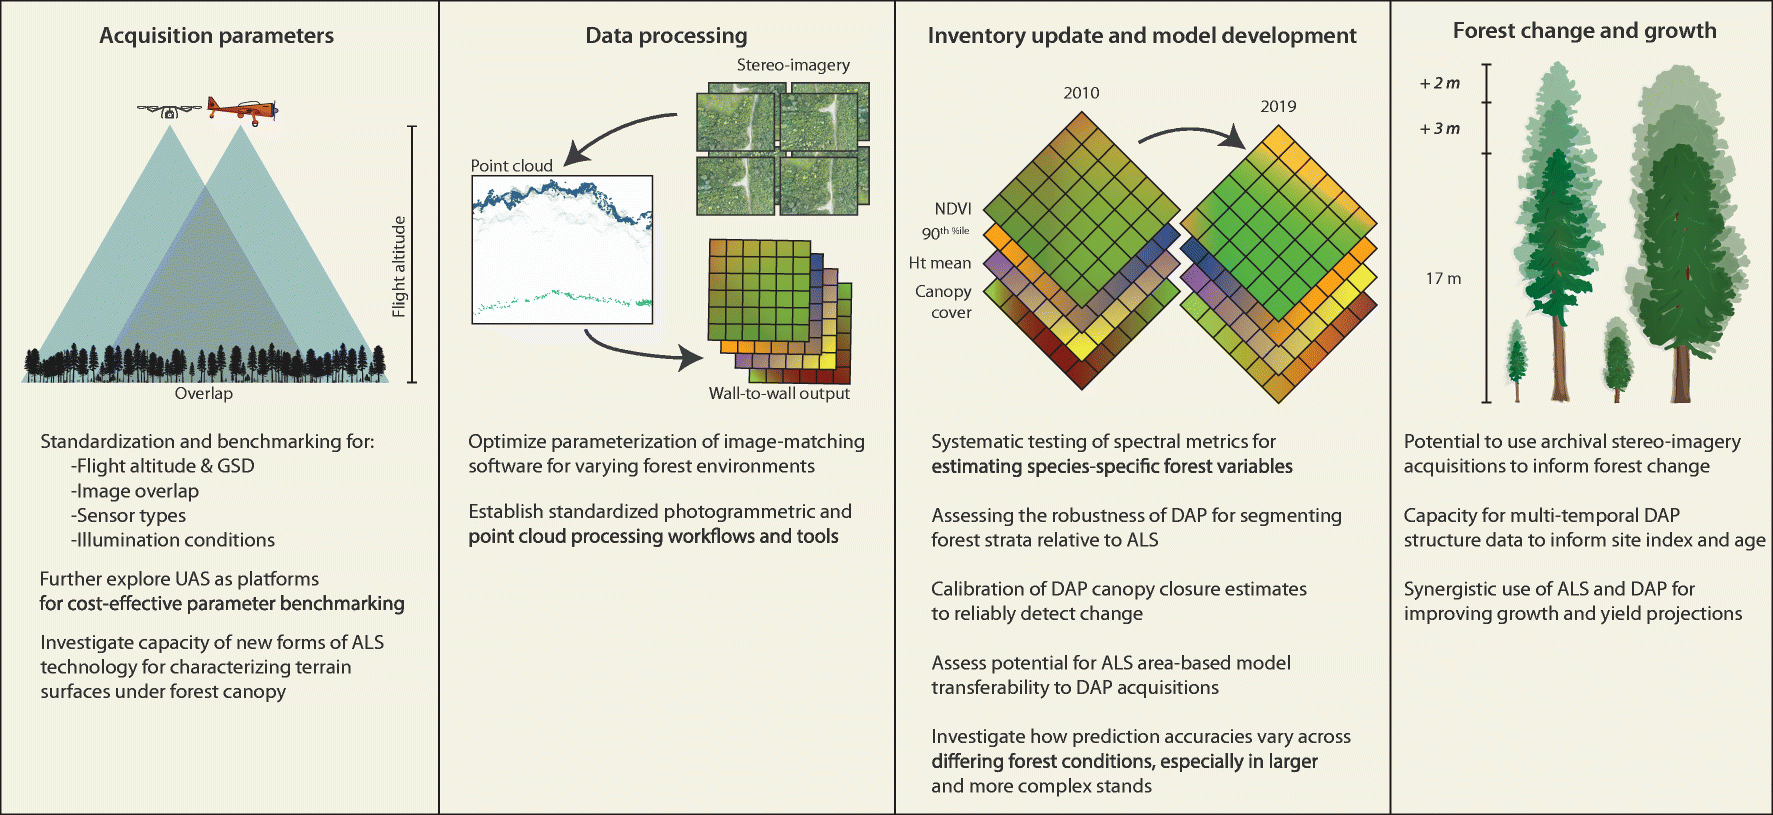 Digital Aerial Photogrammetry for Updating Area-Based Forest